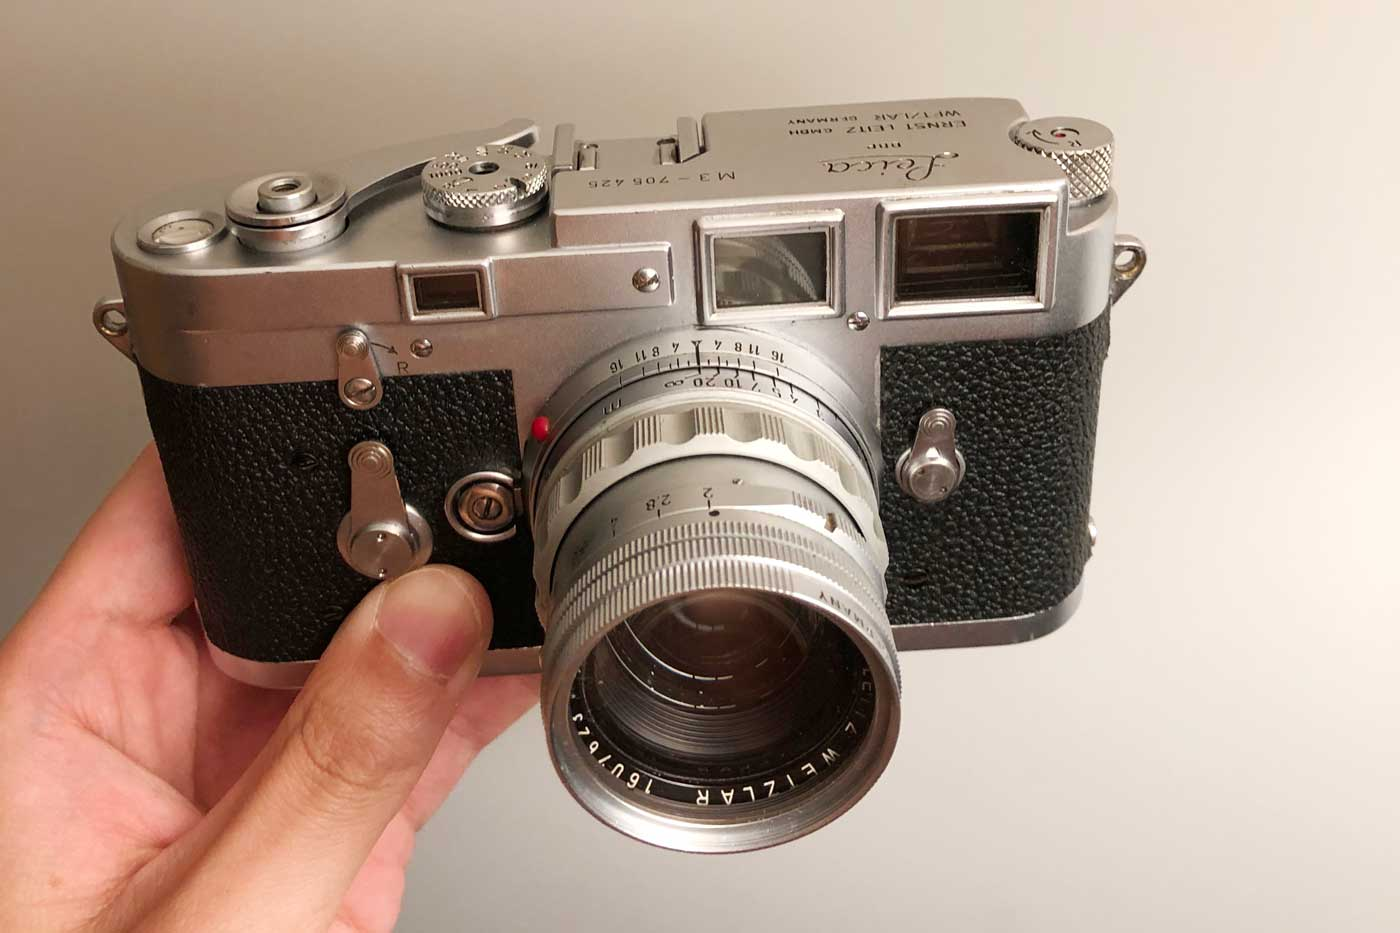 Leica-Summicron-50mm-50-f2-Rigid-Type-1-I-first-lens-review-curl-scallop-narrow-m3-silver-chrome-compare-different-versions